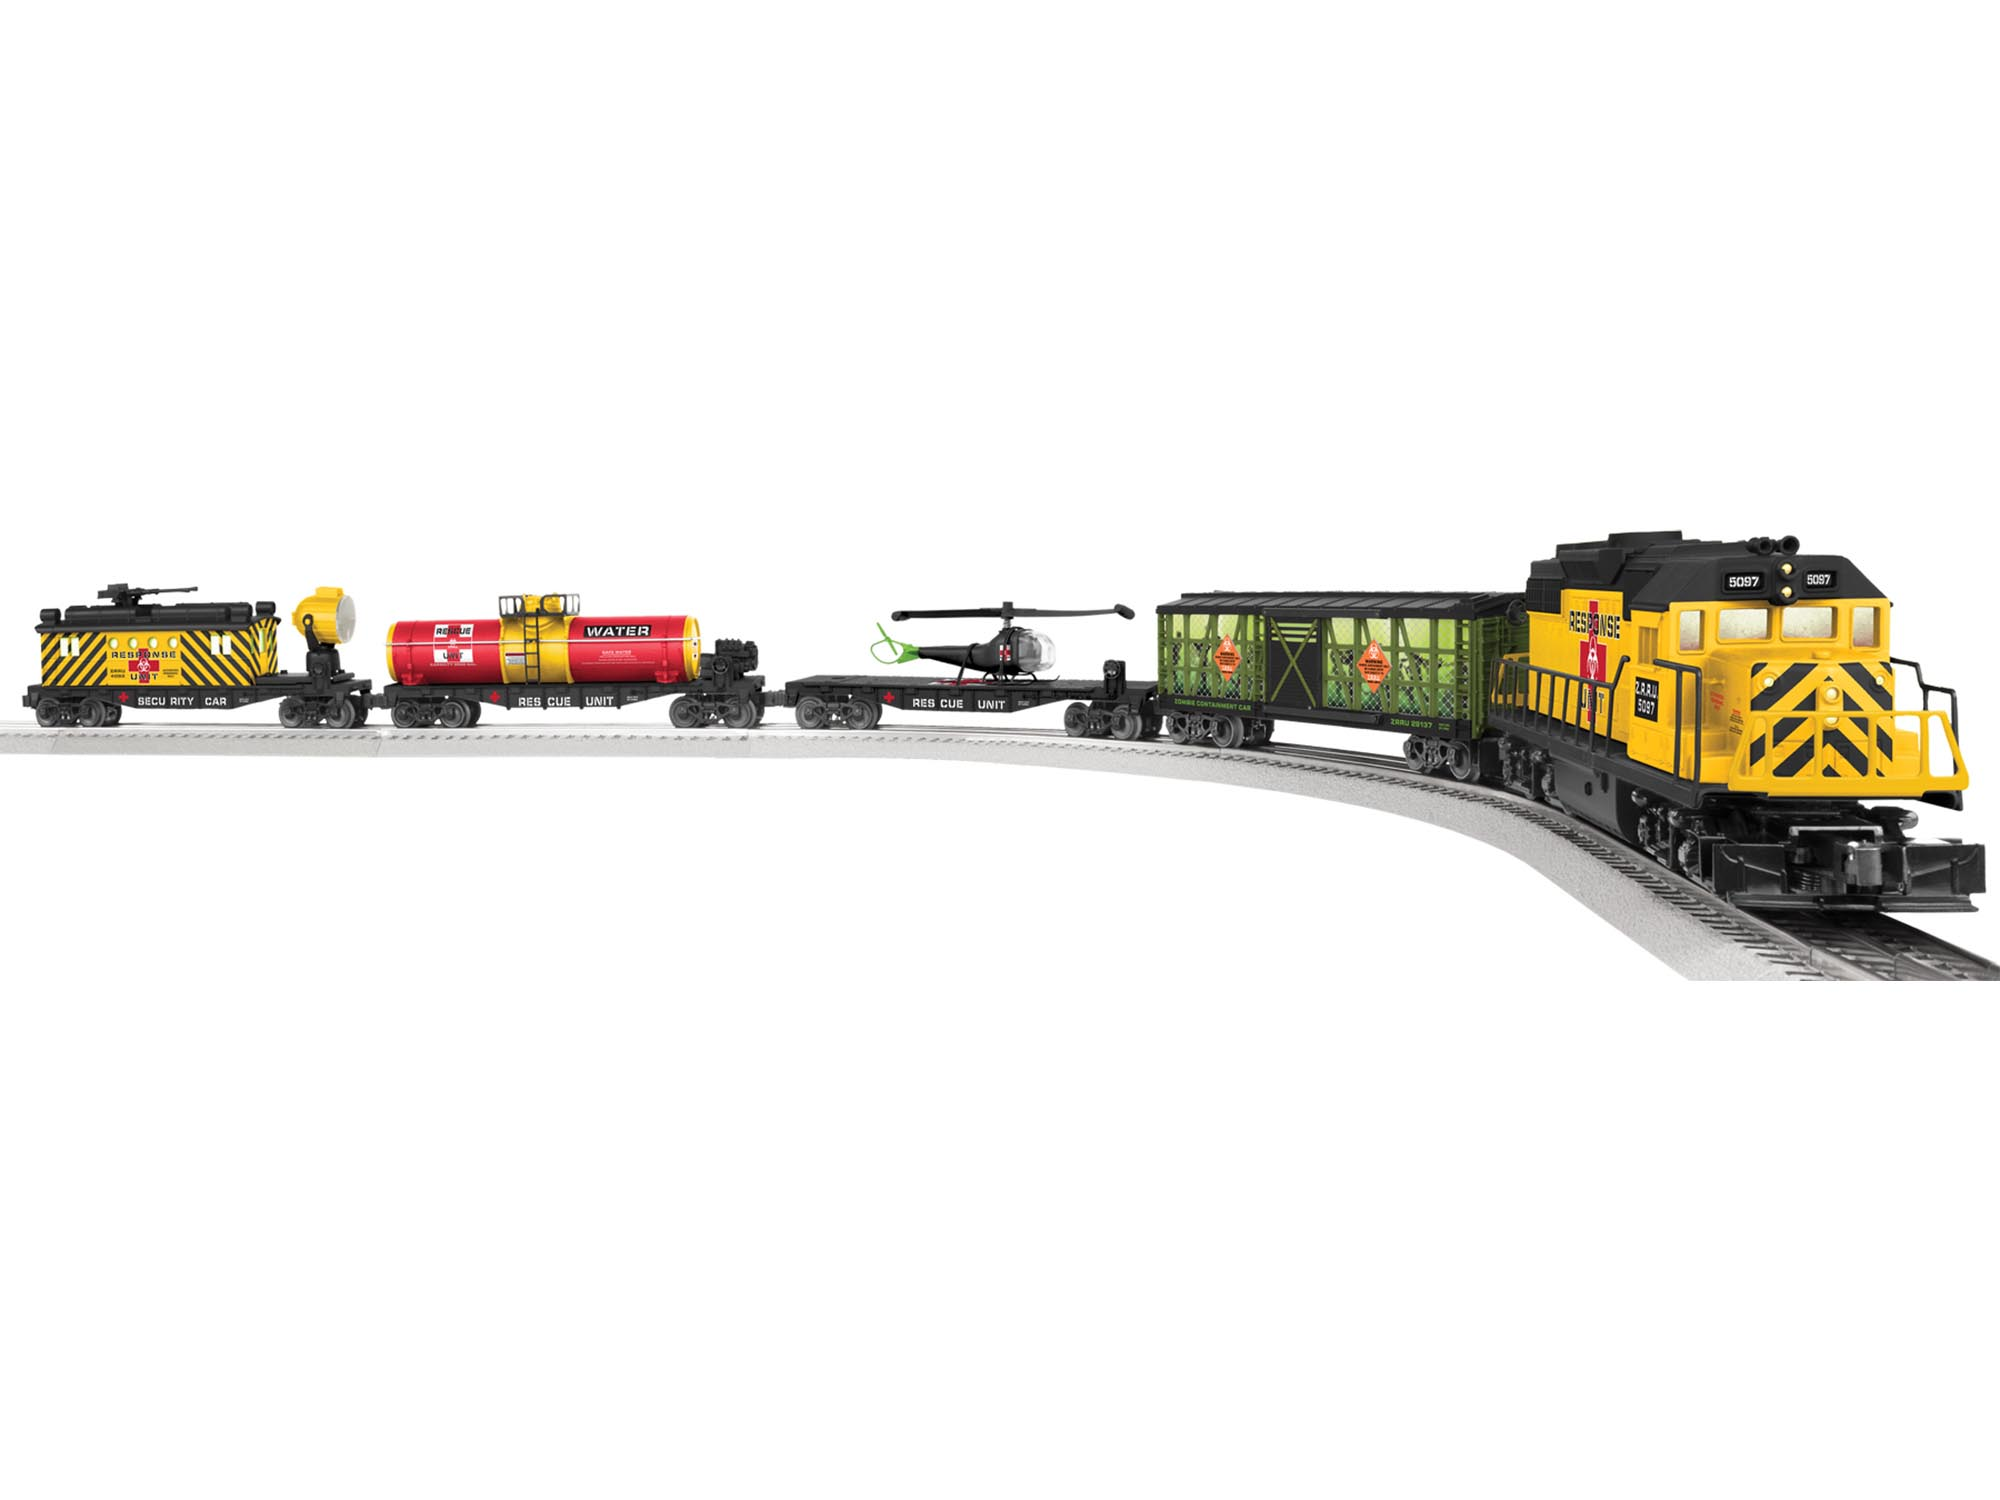 Lionel 6-82099 Zombie Apocalypse Survivors Train Set with Sound & Lion This is a Lionel 6-82099 O Scale Zombie Apocalypse Survivors Set with Sound & LionChief Remote. Set Includes: GP38 diesel locomotive , Transparent Stock Car , Flatcar with Helicopter , Flatcar with water tank , Security caboose , Eight curved O36 FasTrack track sections, three straight FasTrack track section, and one straight FasTrack terminal track section , Wall-pack power supply , LionChief remote for locomotive , Pack of zombie and military figures , Locomotive Features: , Electric locomotive controlled by remote , On/off switch for sound , RailSounds RC sound system with diesel revving and background sounds, horn, bell, and user-activated alien sounds (with remote use only) , Operating directional headlights , Duel powerful maintenance-free motor , Metal frame and handrails , Operating couplers at both ends , Lighted interior , Traction tires , Engineer and fireman figures , Rolling Stock Features: , Die-cast metal sprung trucks , Operating couplers , Illuminated transparent stock car , Removable helicopter load , Metal ladders on tank car , Interior illumination in caboose with rotating searchlight , Remote Features: , Forward and reverse speed control knob , Three buttons for whistle sound, bell, and special announcements and Requires three AAA alkaline batteries (not included).Condition: Factory New (C-9All original; unused; factory rubs and evidence of handling, shipping and factory test run.Standards for all toy train related accessory items apply to the visual appearance of the item and do not consider the operating functionality of the equipment.Condition and Grading Standards are subjective, at best, and are intended to act as a guide. )Operational Status: FunctionalThis item is brand new from the factory.Original Box: Yes (P-9May have store stamps and price tags. Has inner liners.)Manufacturer: LionelModel Numb